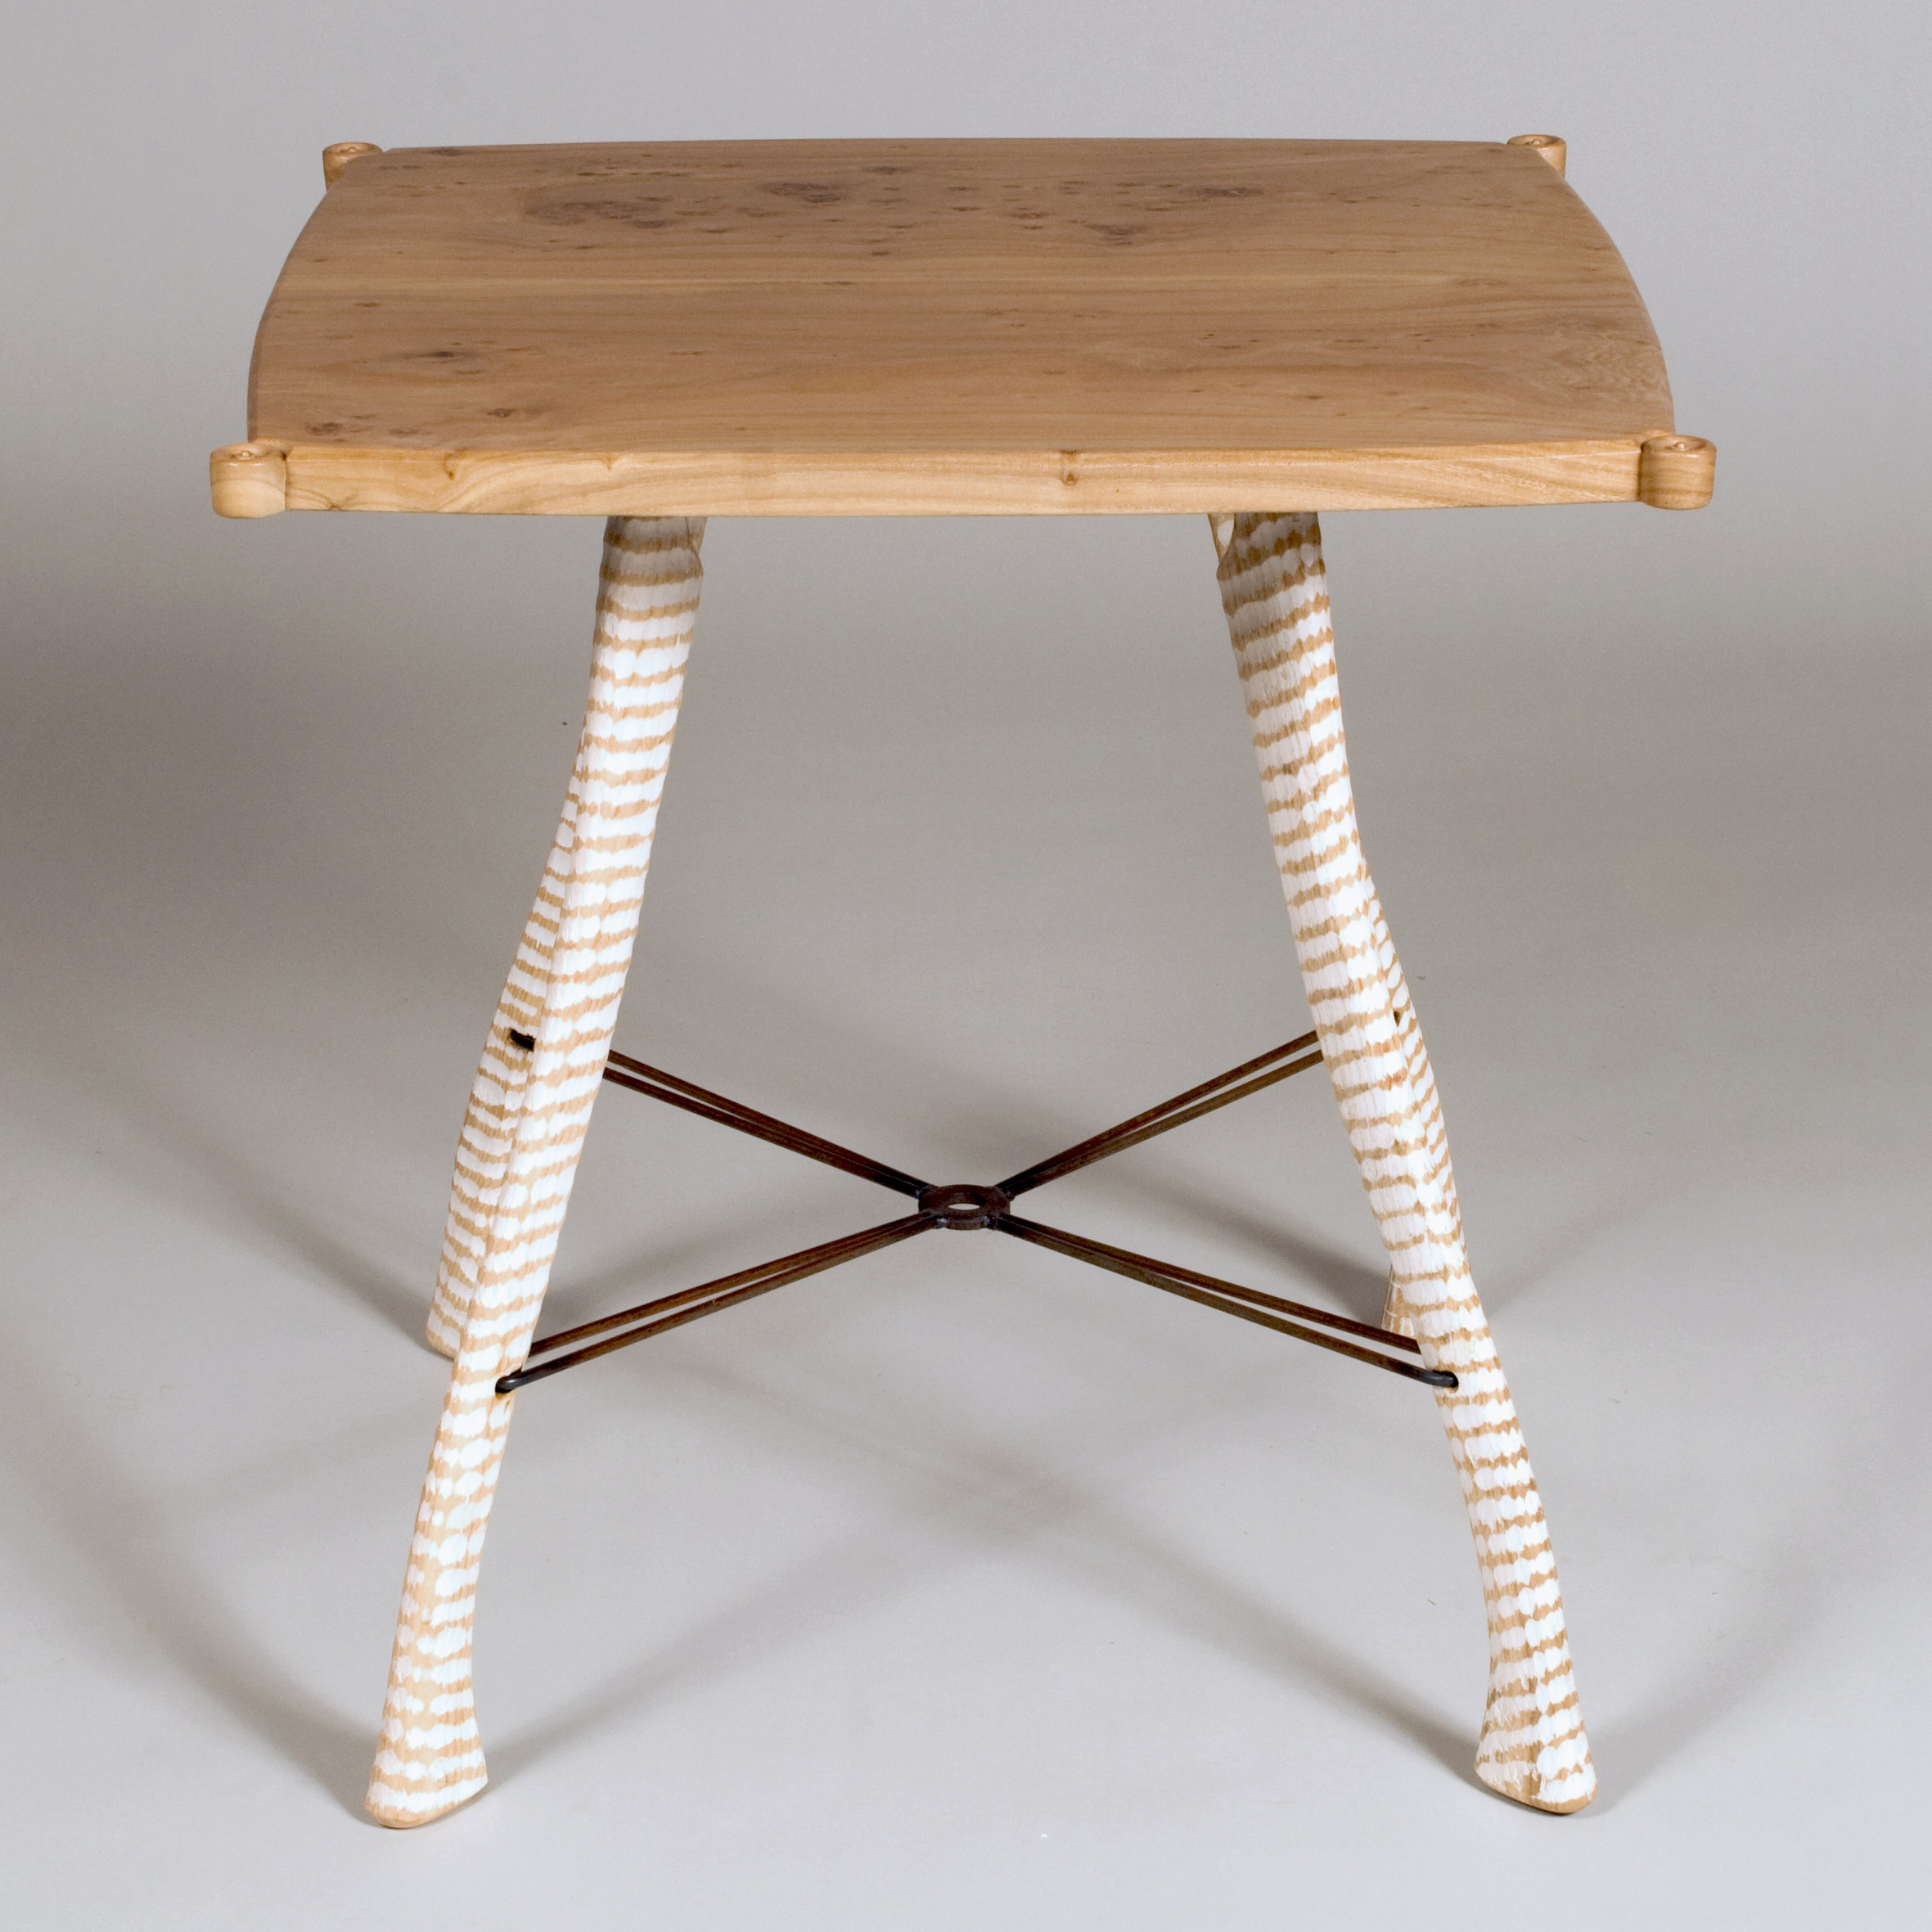 ax-handle-table-white-legs.jpg